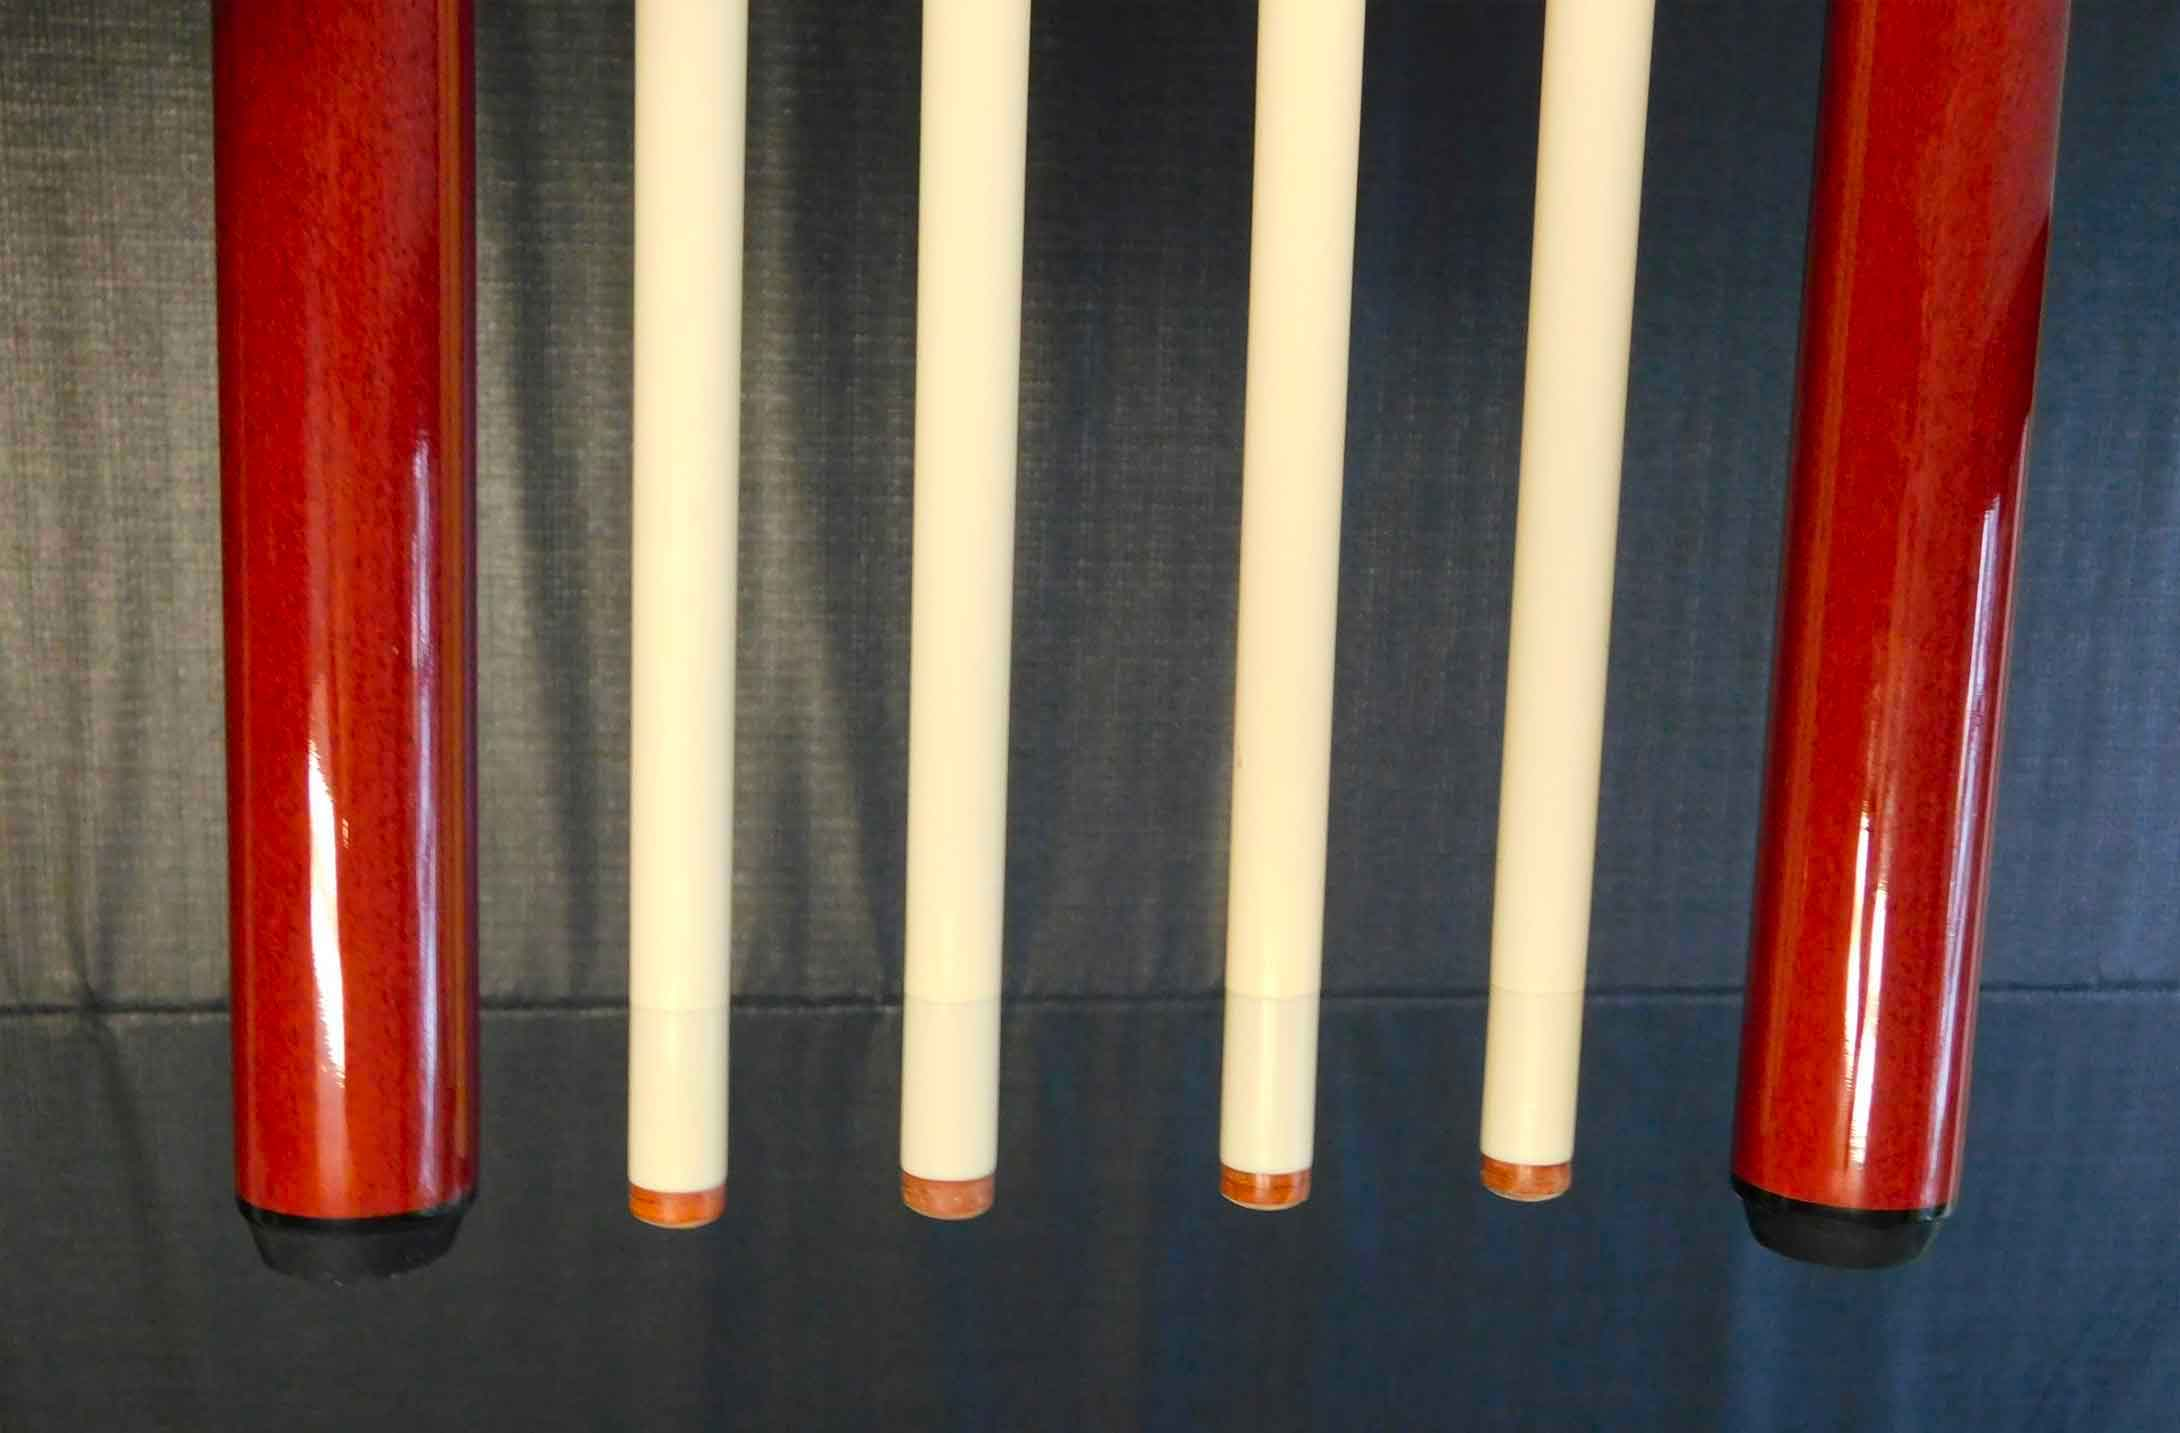 Top and bottoms of R&R Outdoors All Weather Billiards cue sticks